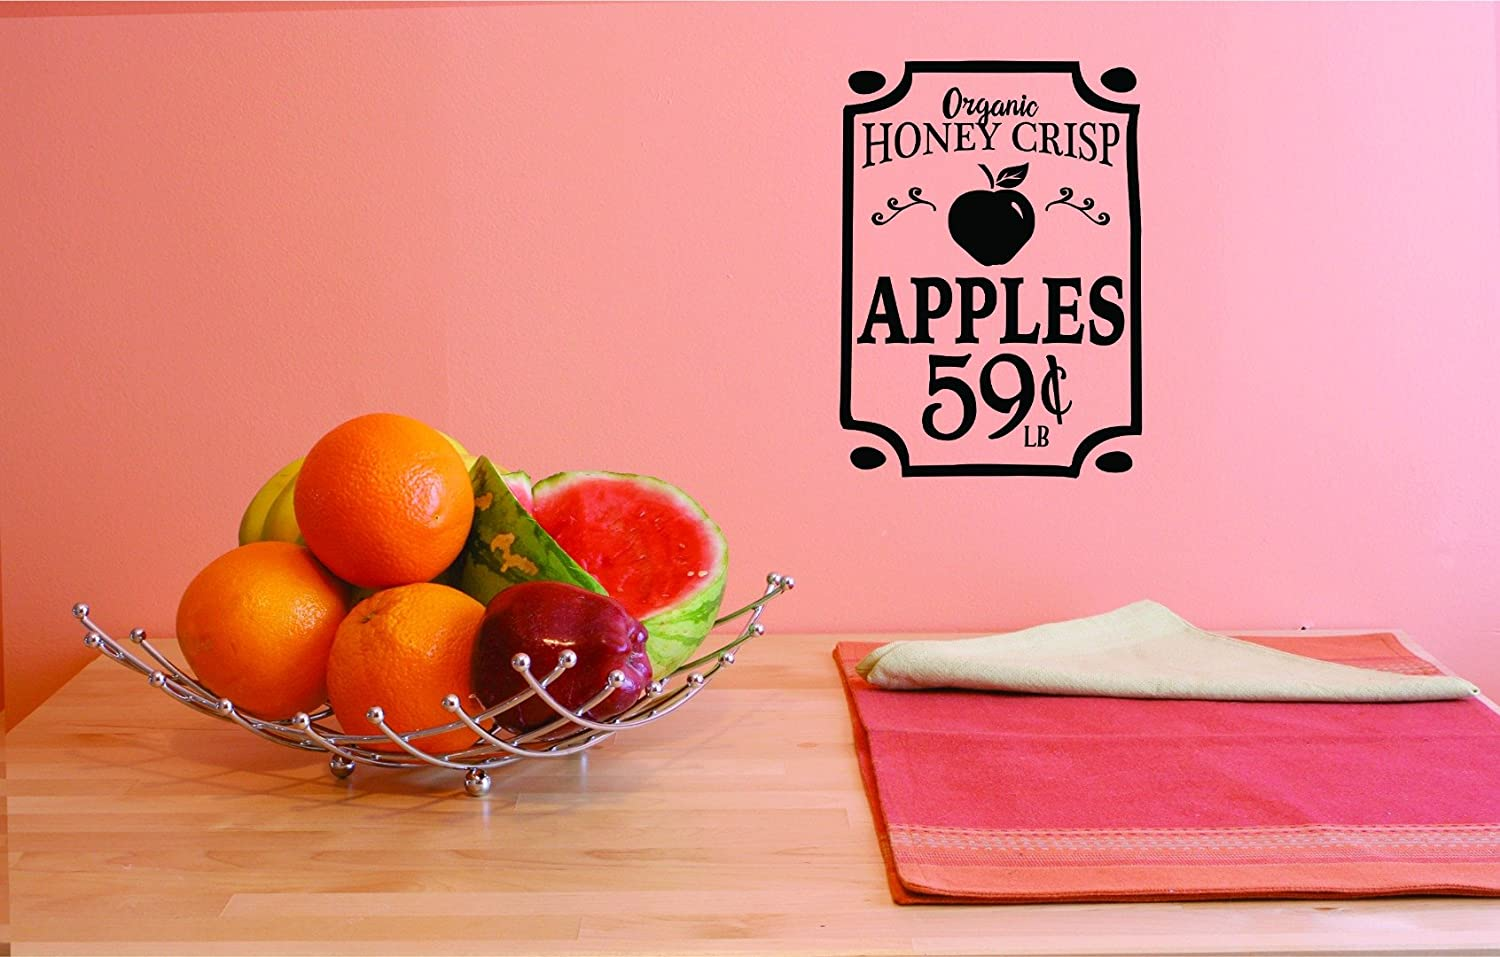 Design with Vinyl JER 1773 3 Hot New Decals Organic Honey Crisp Apples 59 Cents Wall Art Size 20 Inches x 40 Inches Color Black 20 x 40